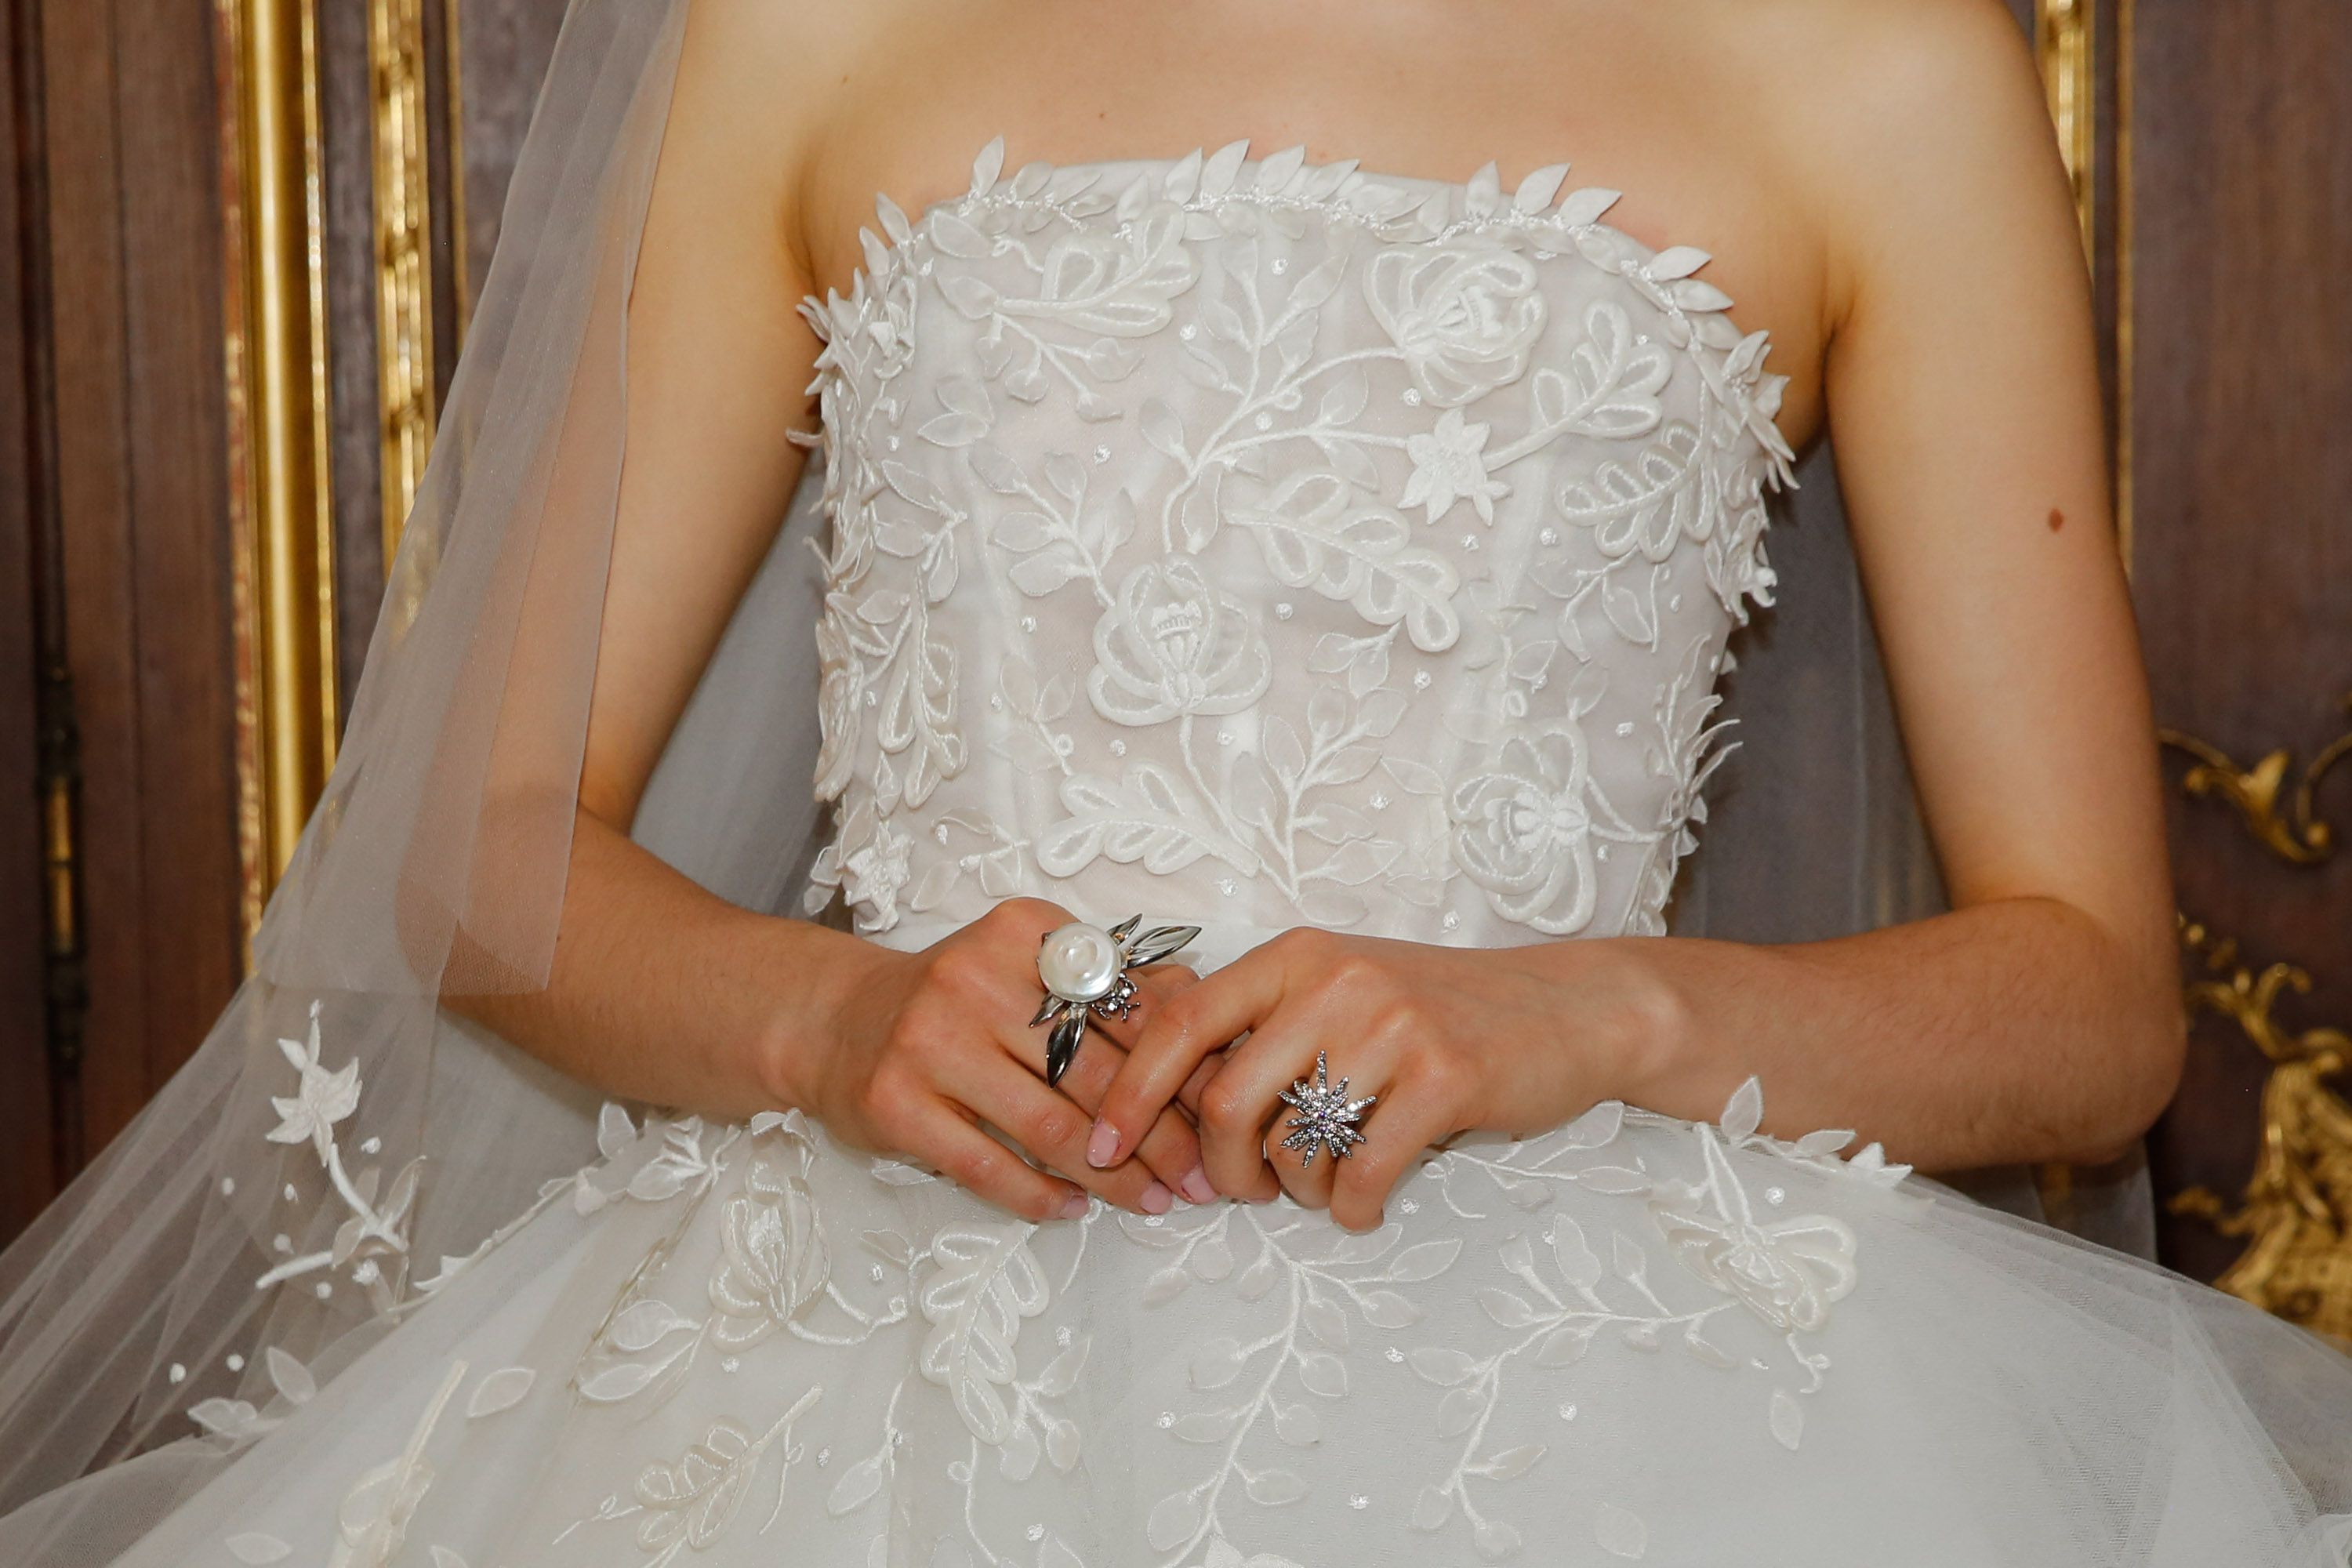 Wedding Gowns Start At 6 000 Pesos Sale And Rent Home Facebook